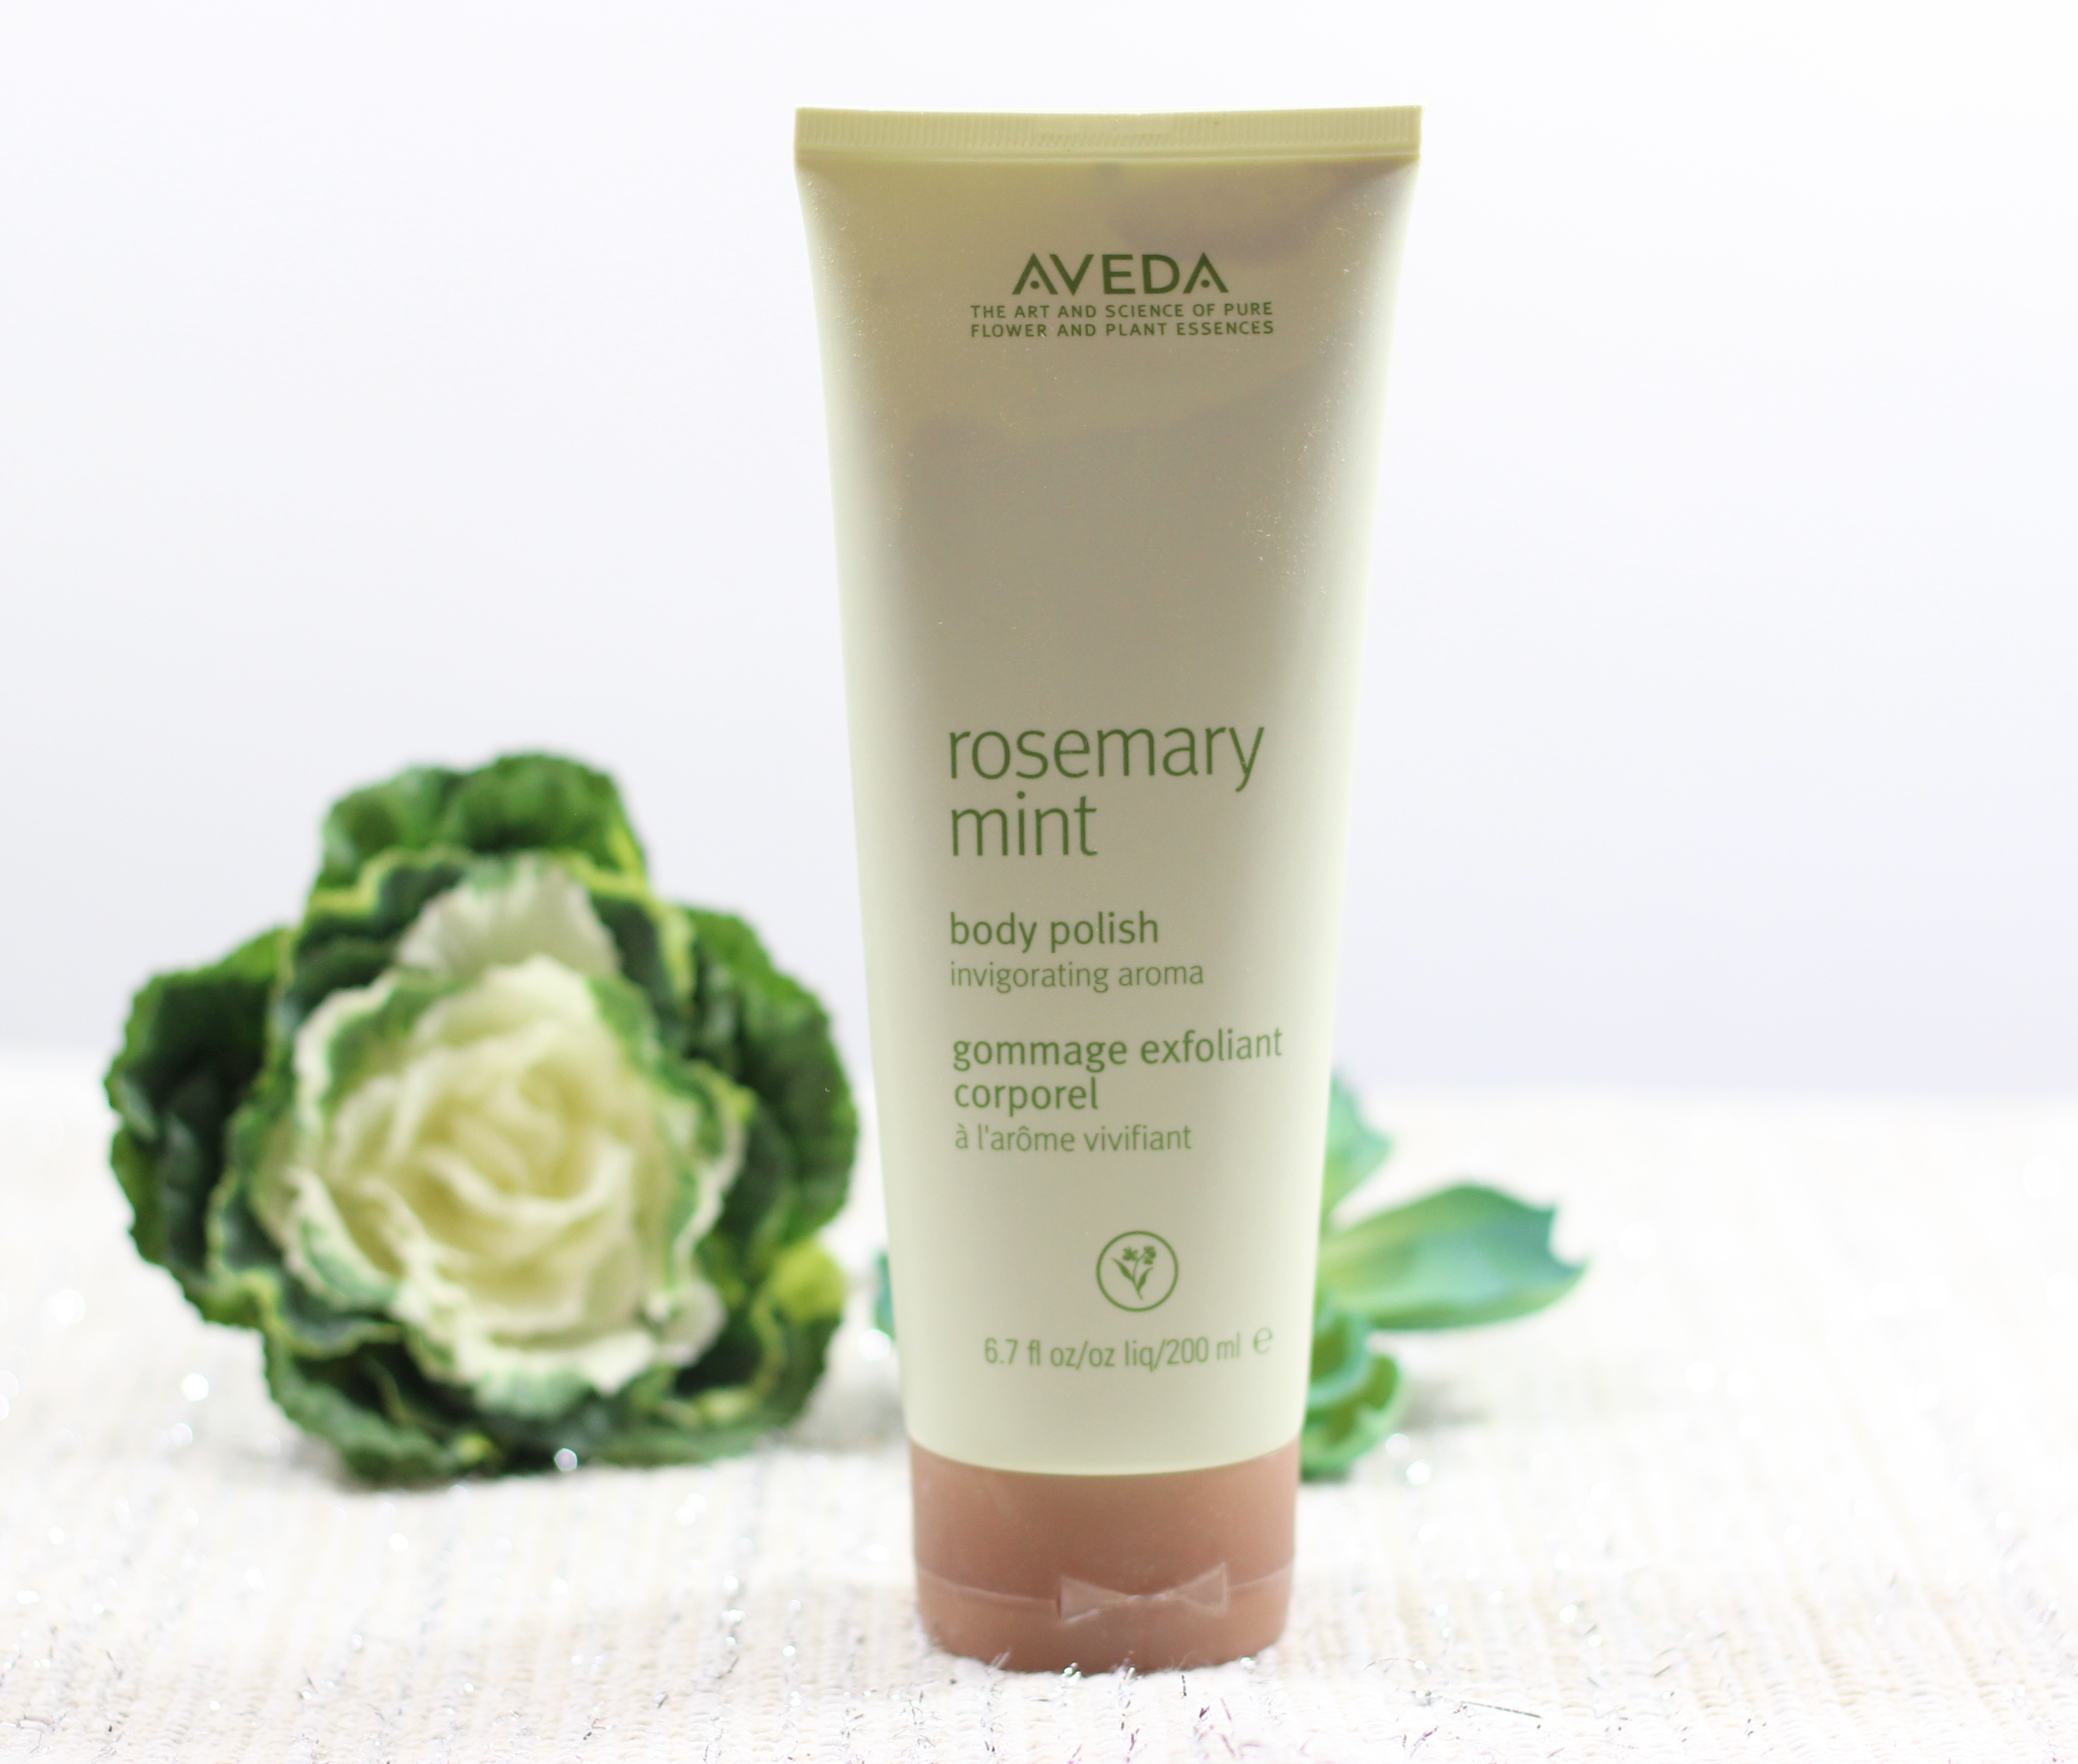 Aveda Rosemary Mint Body Polish Review